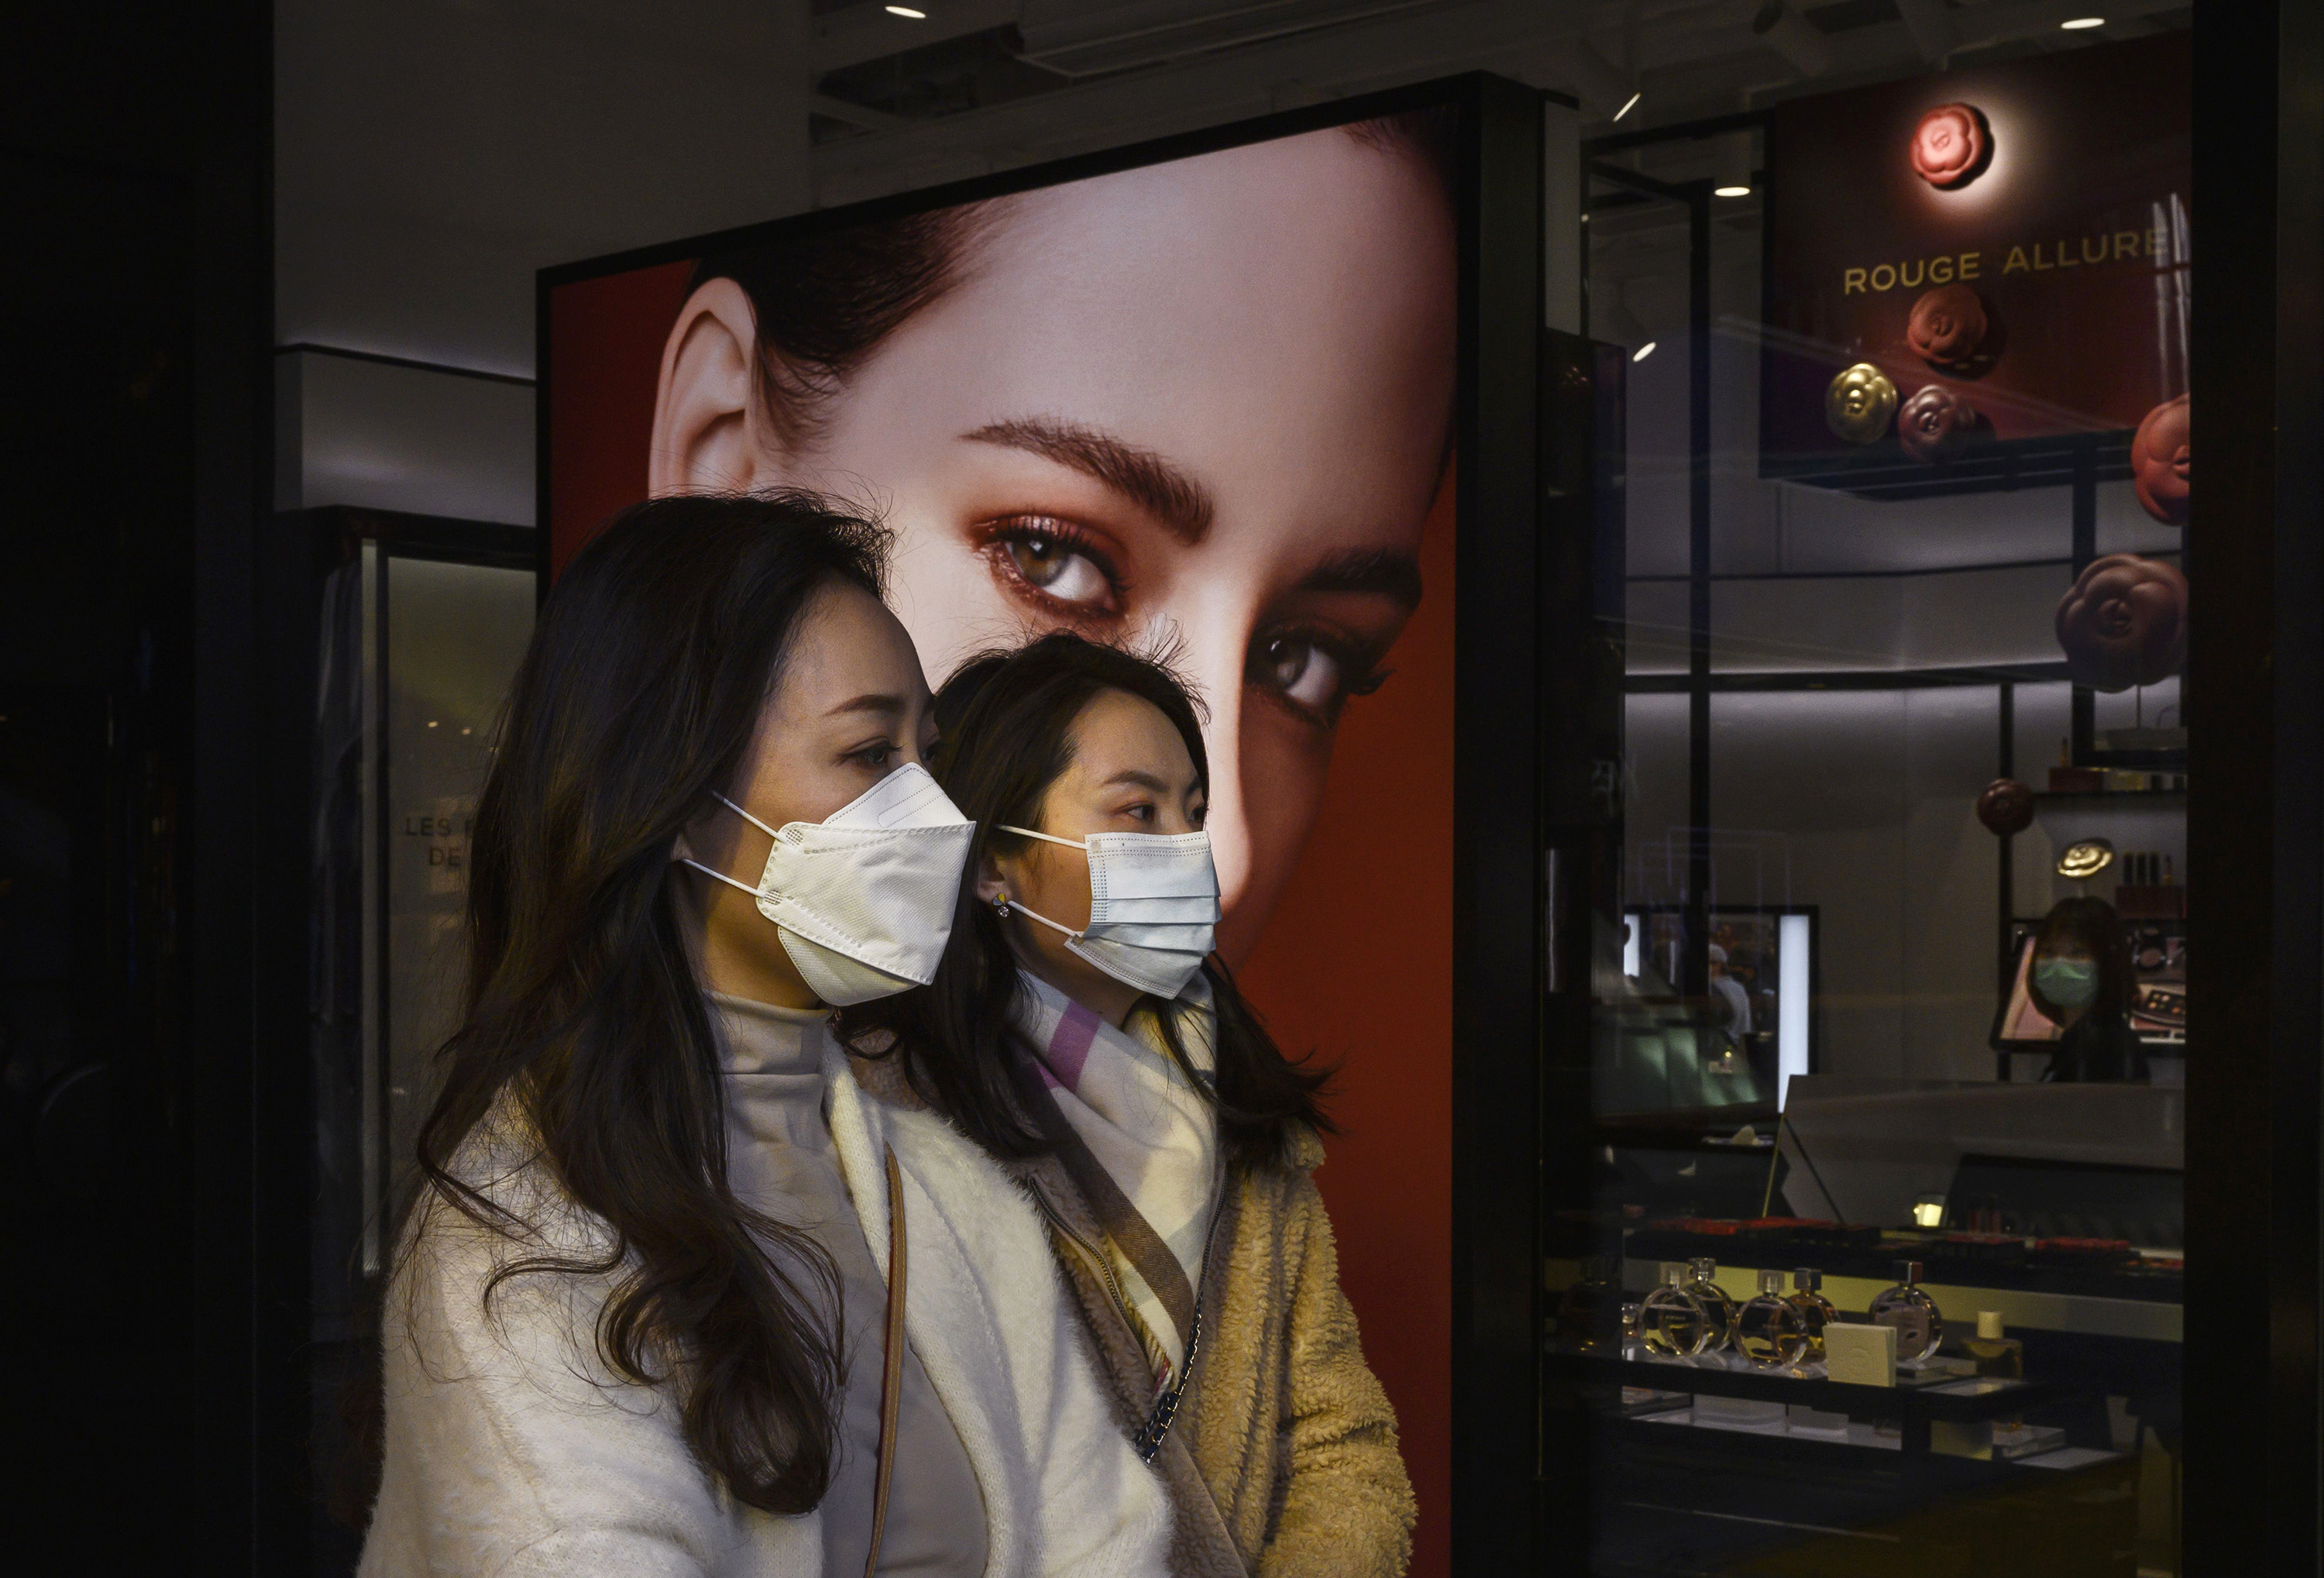 FEATURED Bloomberg: 'Revenge Spending' Spurs Chinese Luxury Rebound From Virus